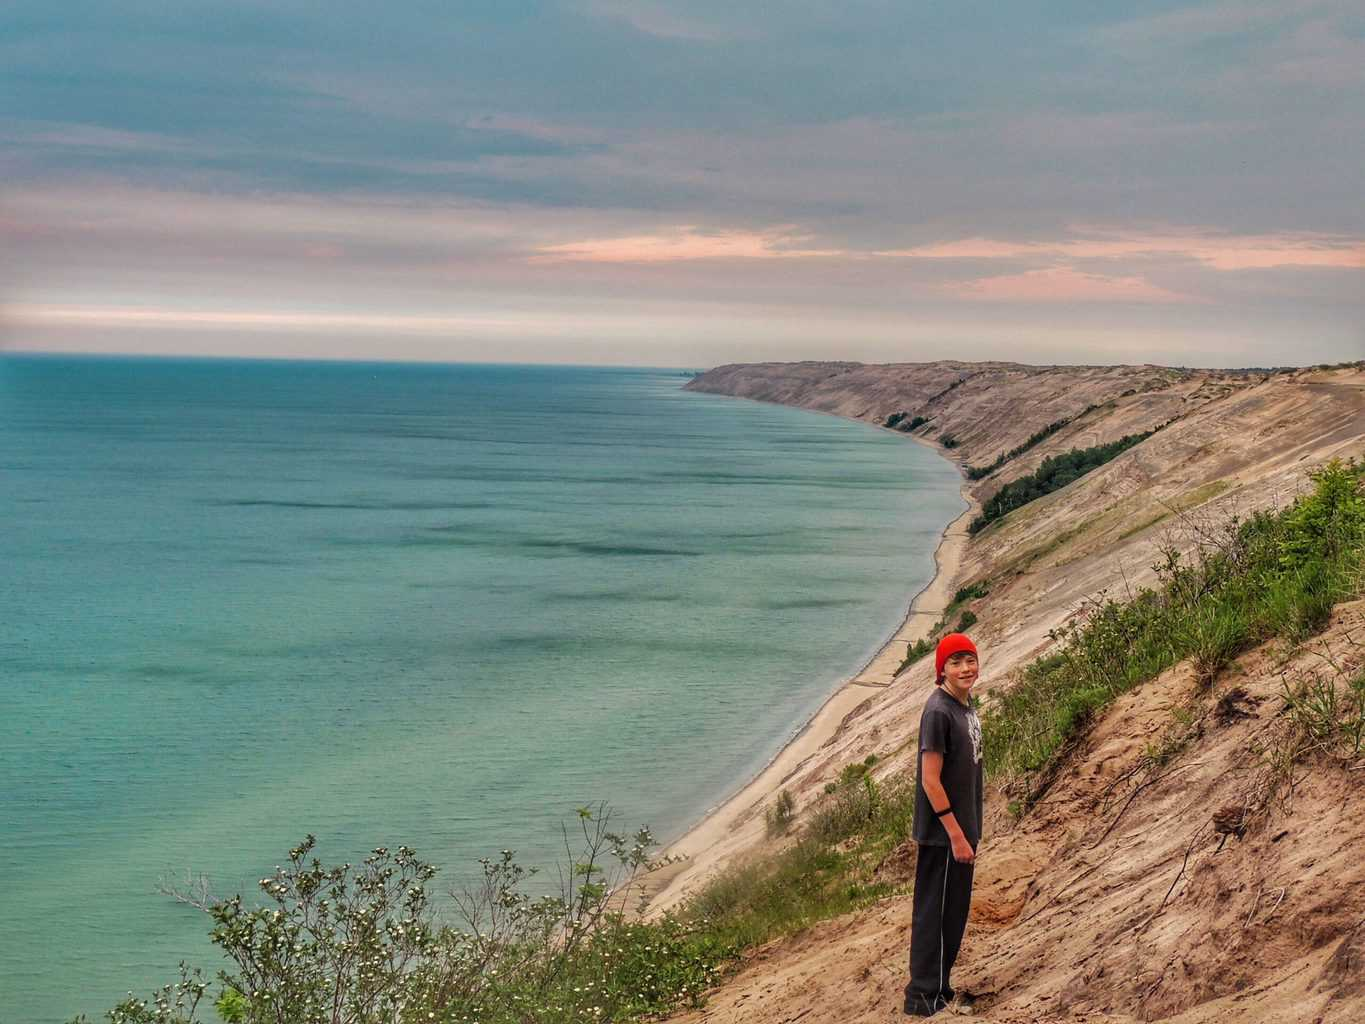 Rowan standing on a dune at the edge of Lake Superior at Pictured Rocks National Lakeshore in Michigan.